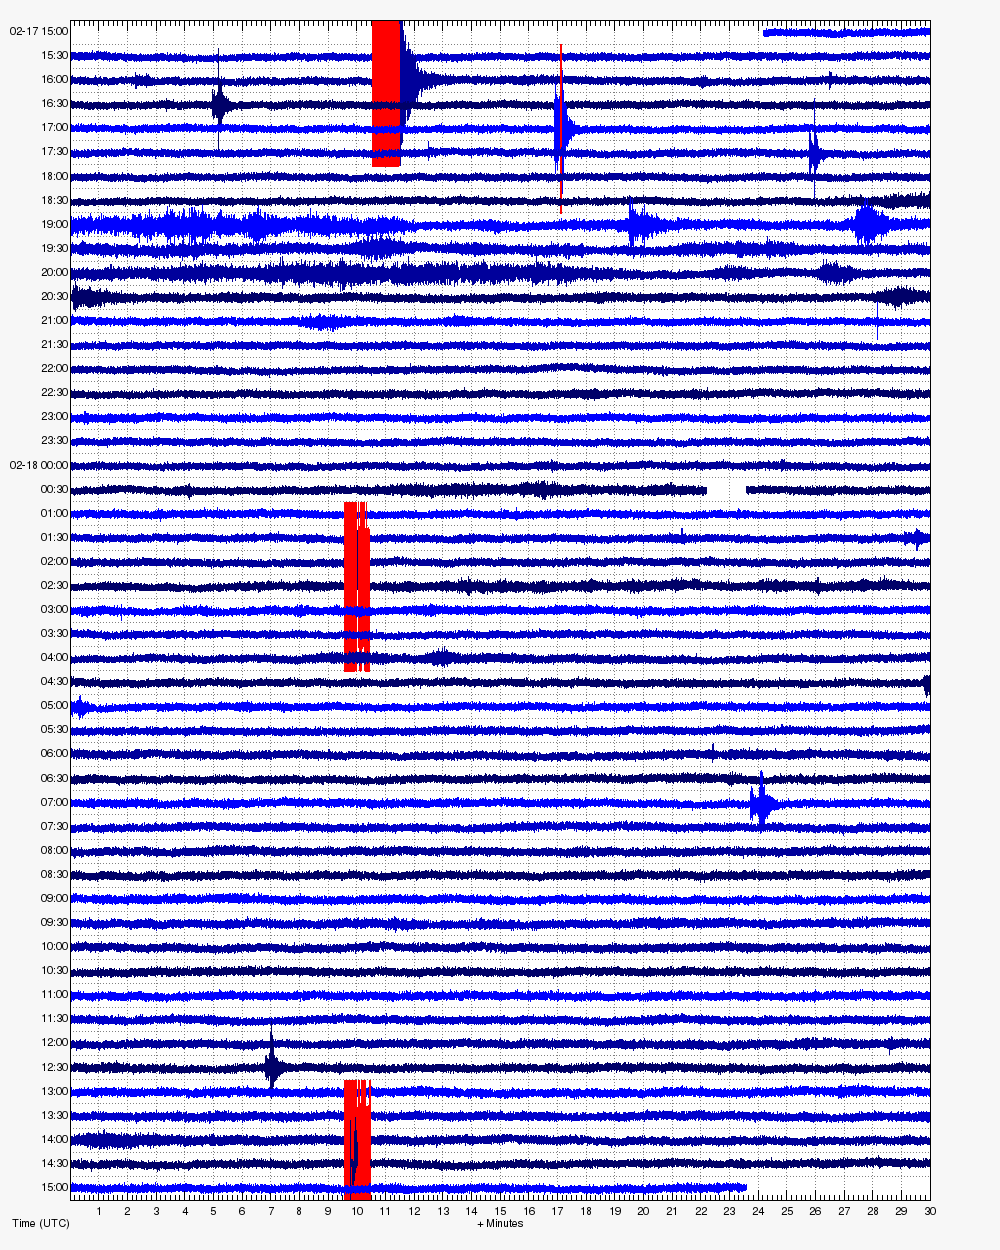 Seismic signal from Bogoslof volcano, MSW station (on Makushin 60 km to the east from Bogoslof)